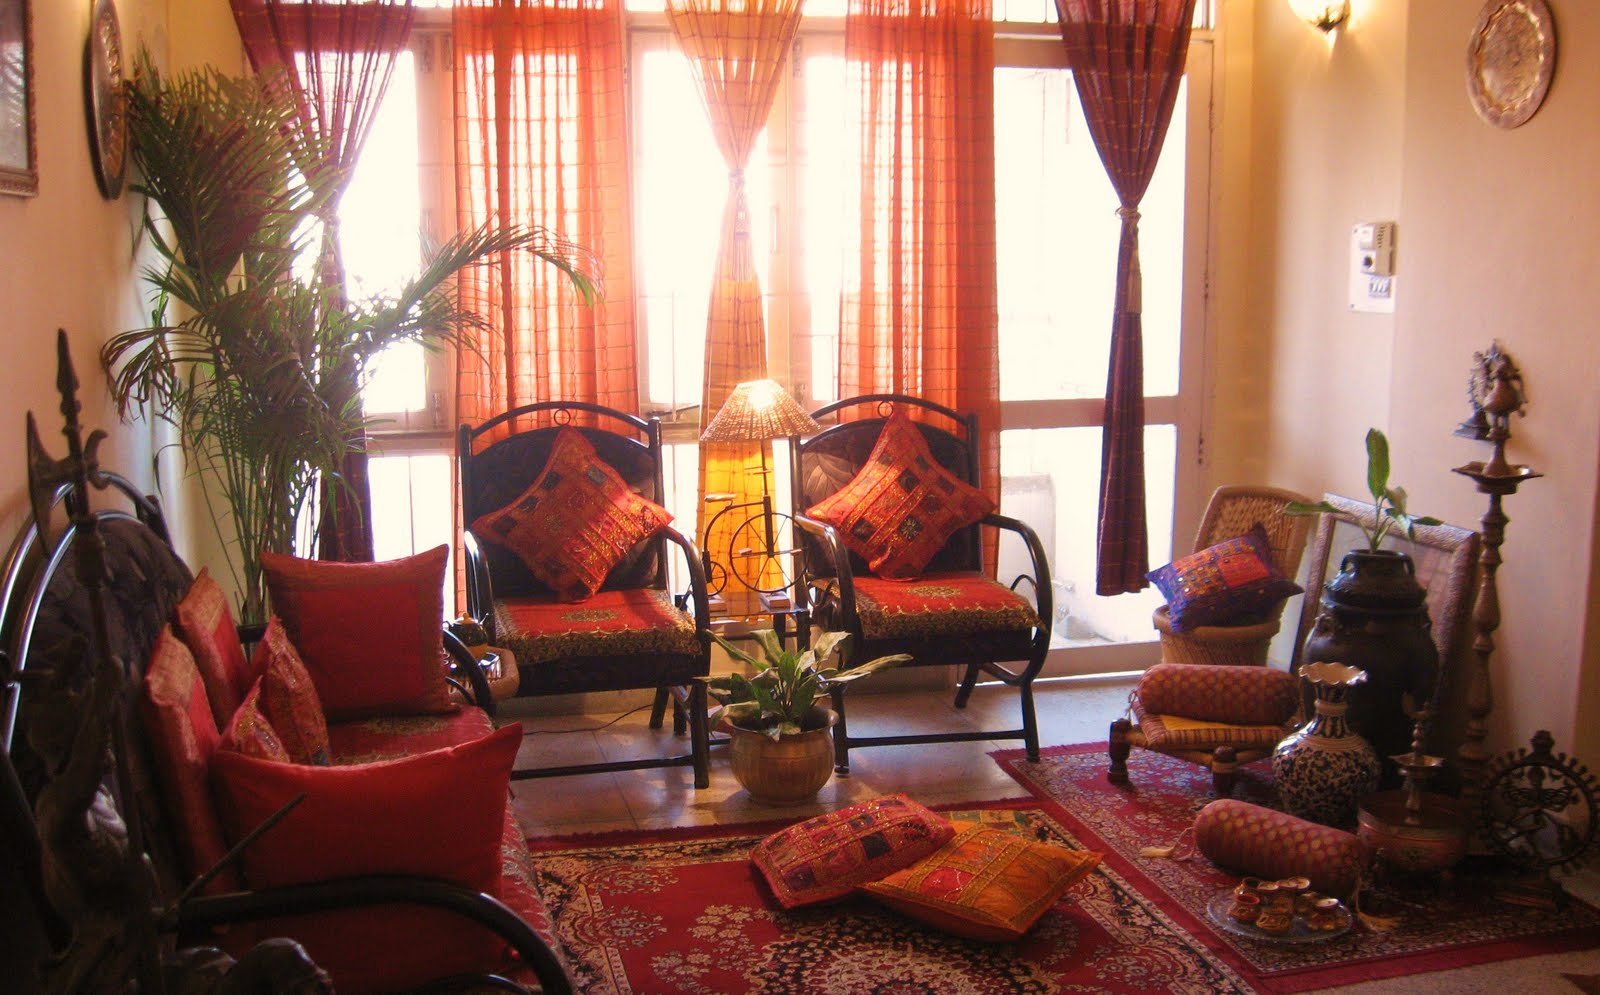 Ethnic indian decor co blogger find of this month - Home interior design images india ...